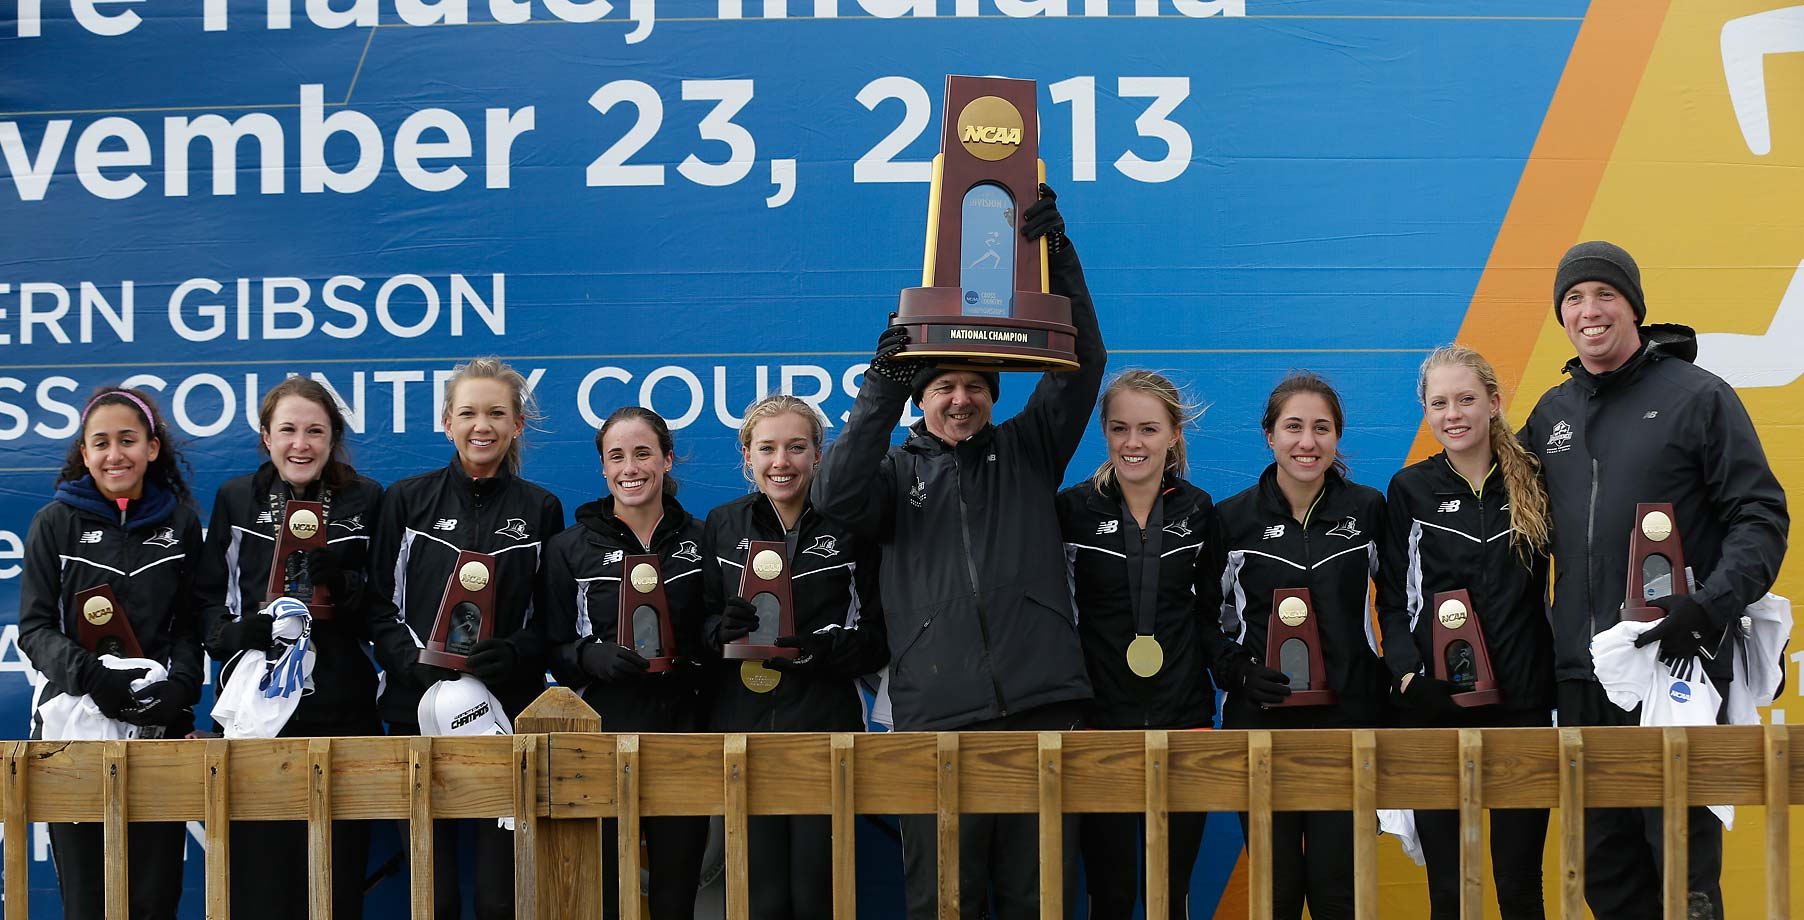 Providence lines up to take its celebratory picture after winning the Women's Cross Country National Championship, a welcome sight for the team after finishing second the year before.